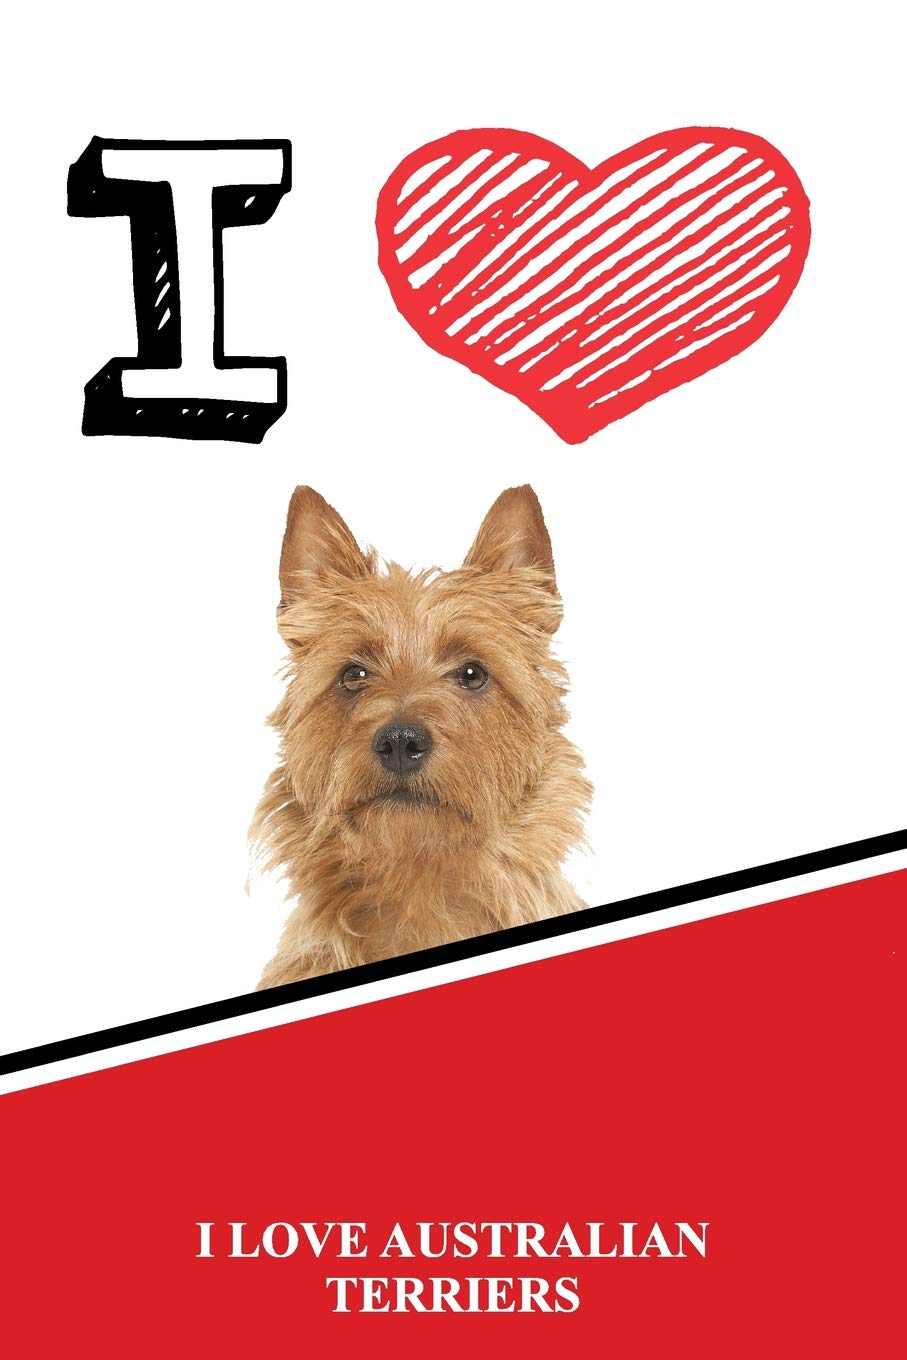 I Love Australian Terriers: Jiu-Jitsu Training Diary Training journal log feature 120 pages 6″x9″